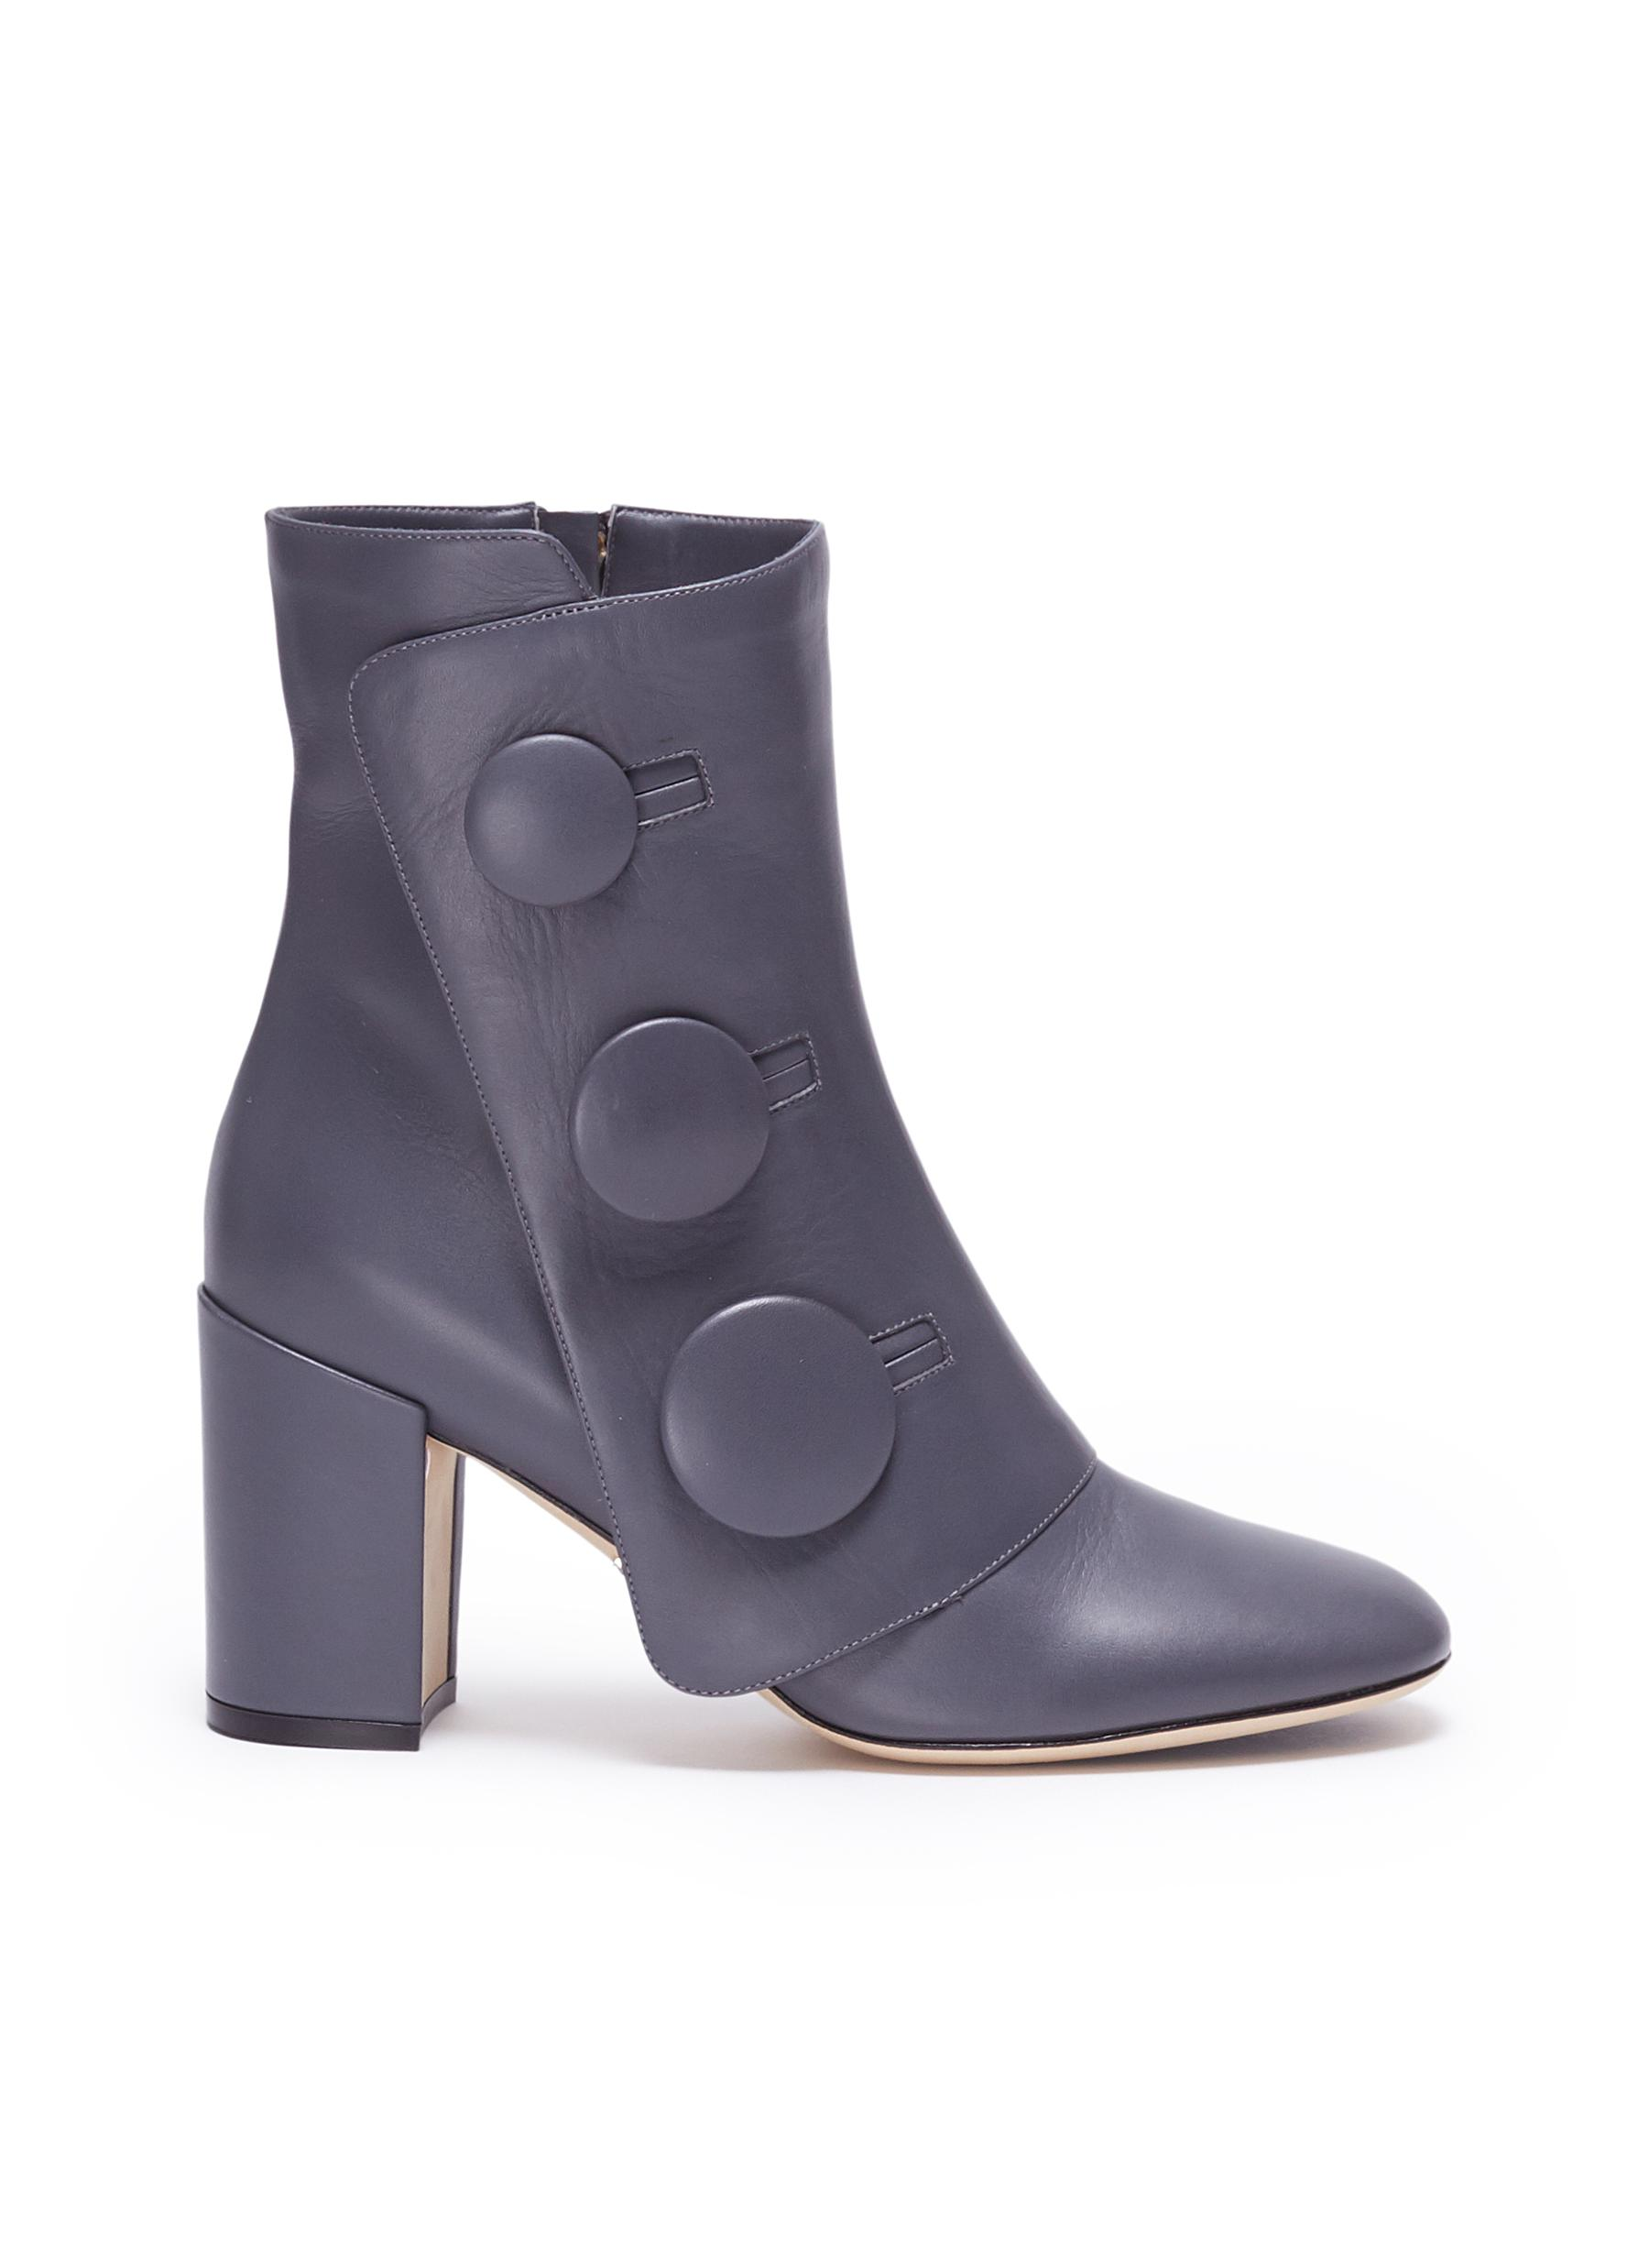 Mock button flap leather ankle boots by RODO